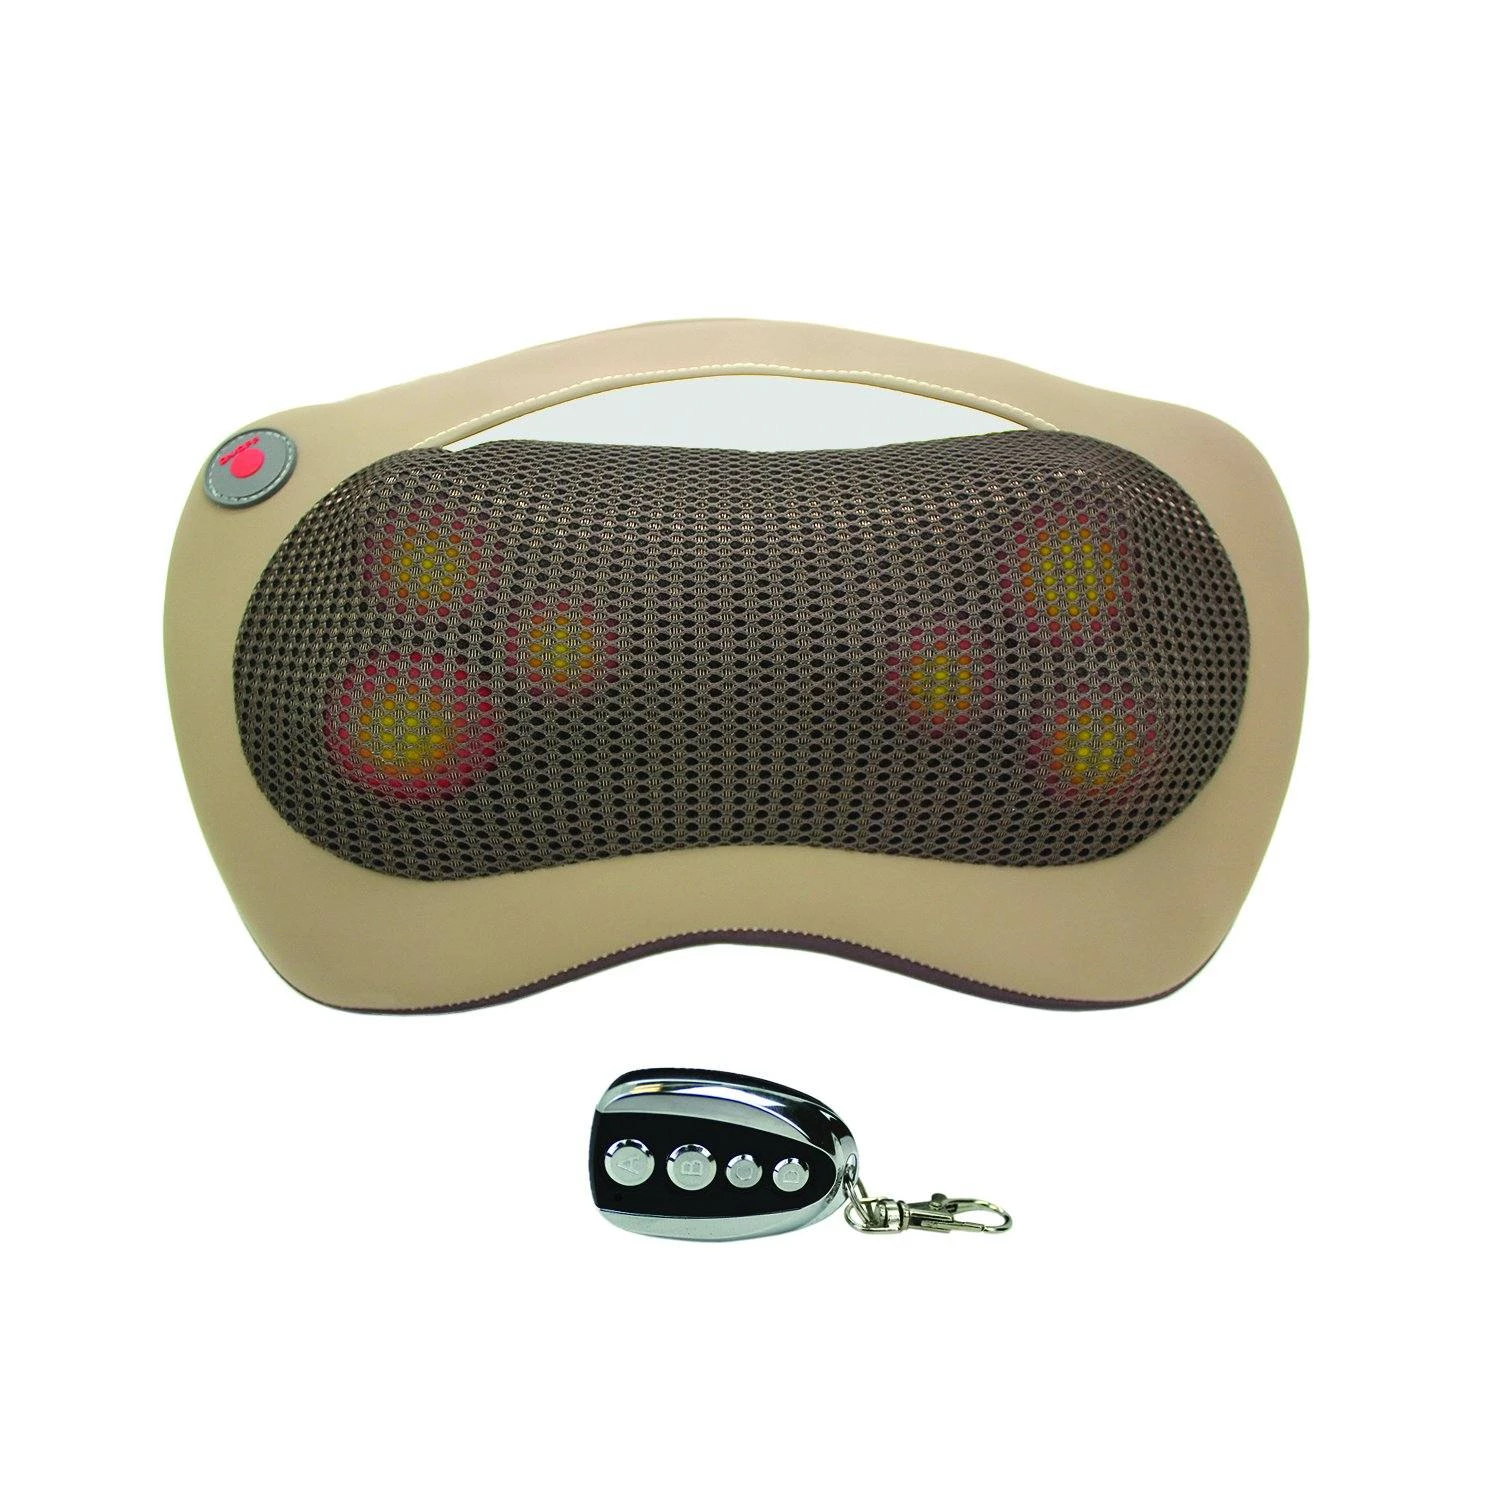 Remote controlled HealthmateForever Shiatsu Full body massage pillow with heat (SHIP TO USA ONLY) - HealthmateForever.com